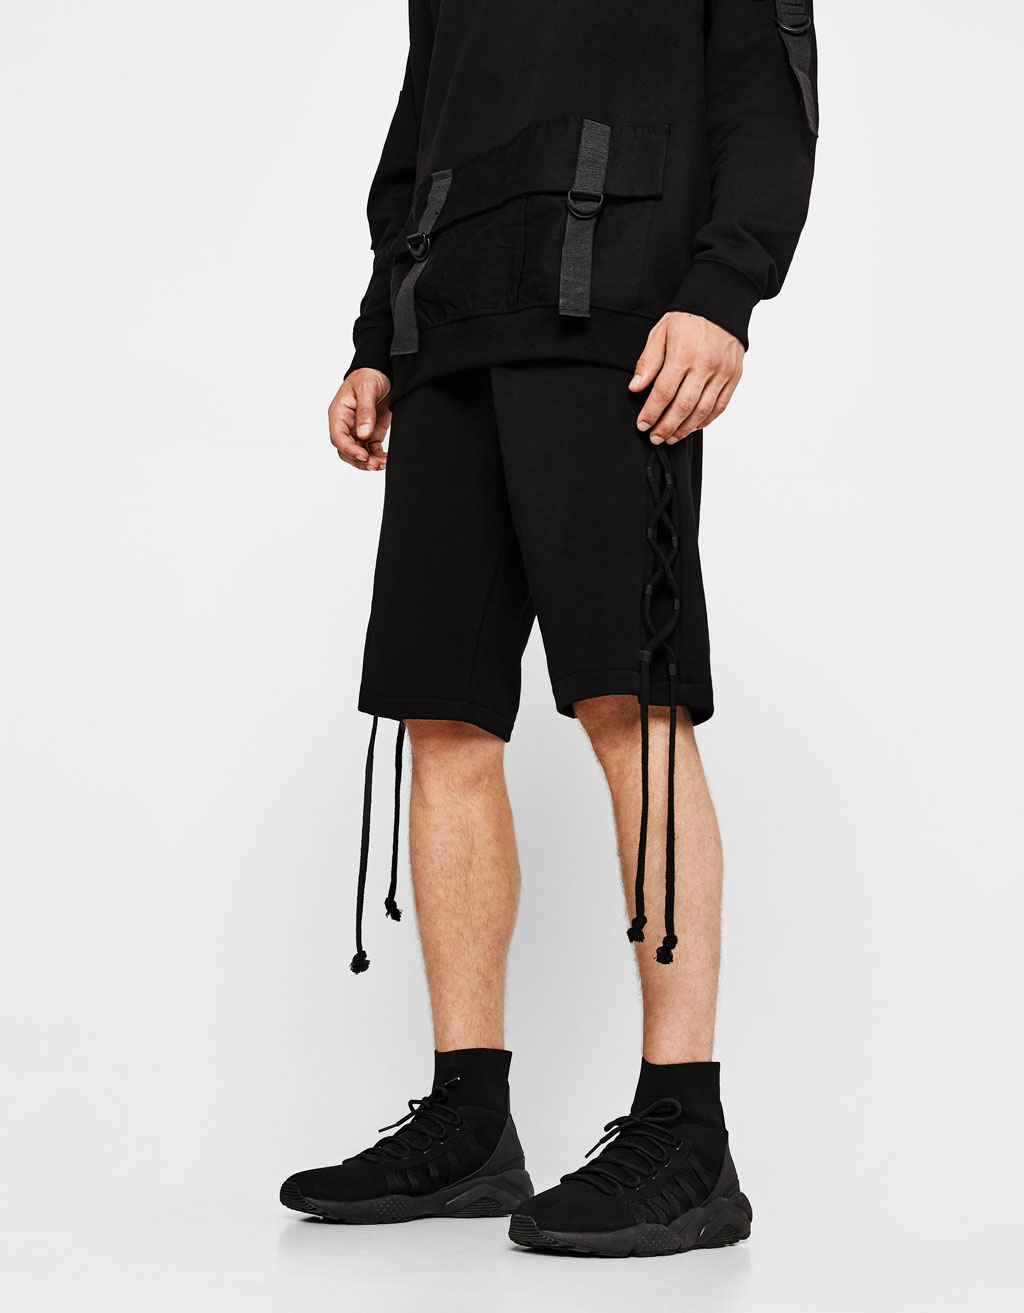 Plush jersey bermuda shorts with side cords